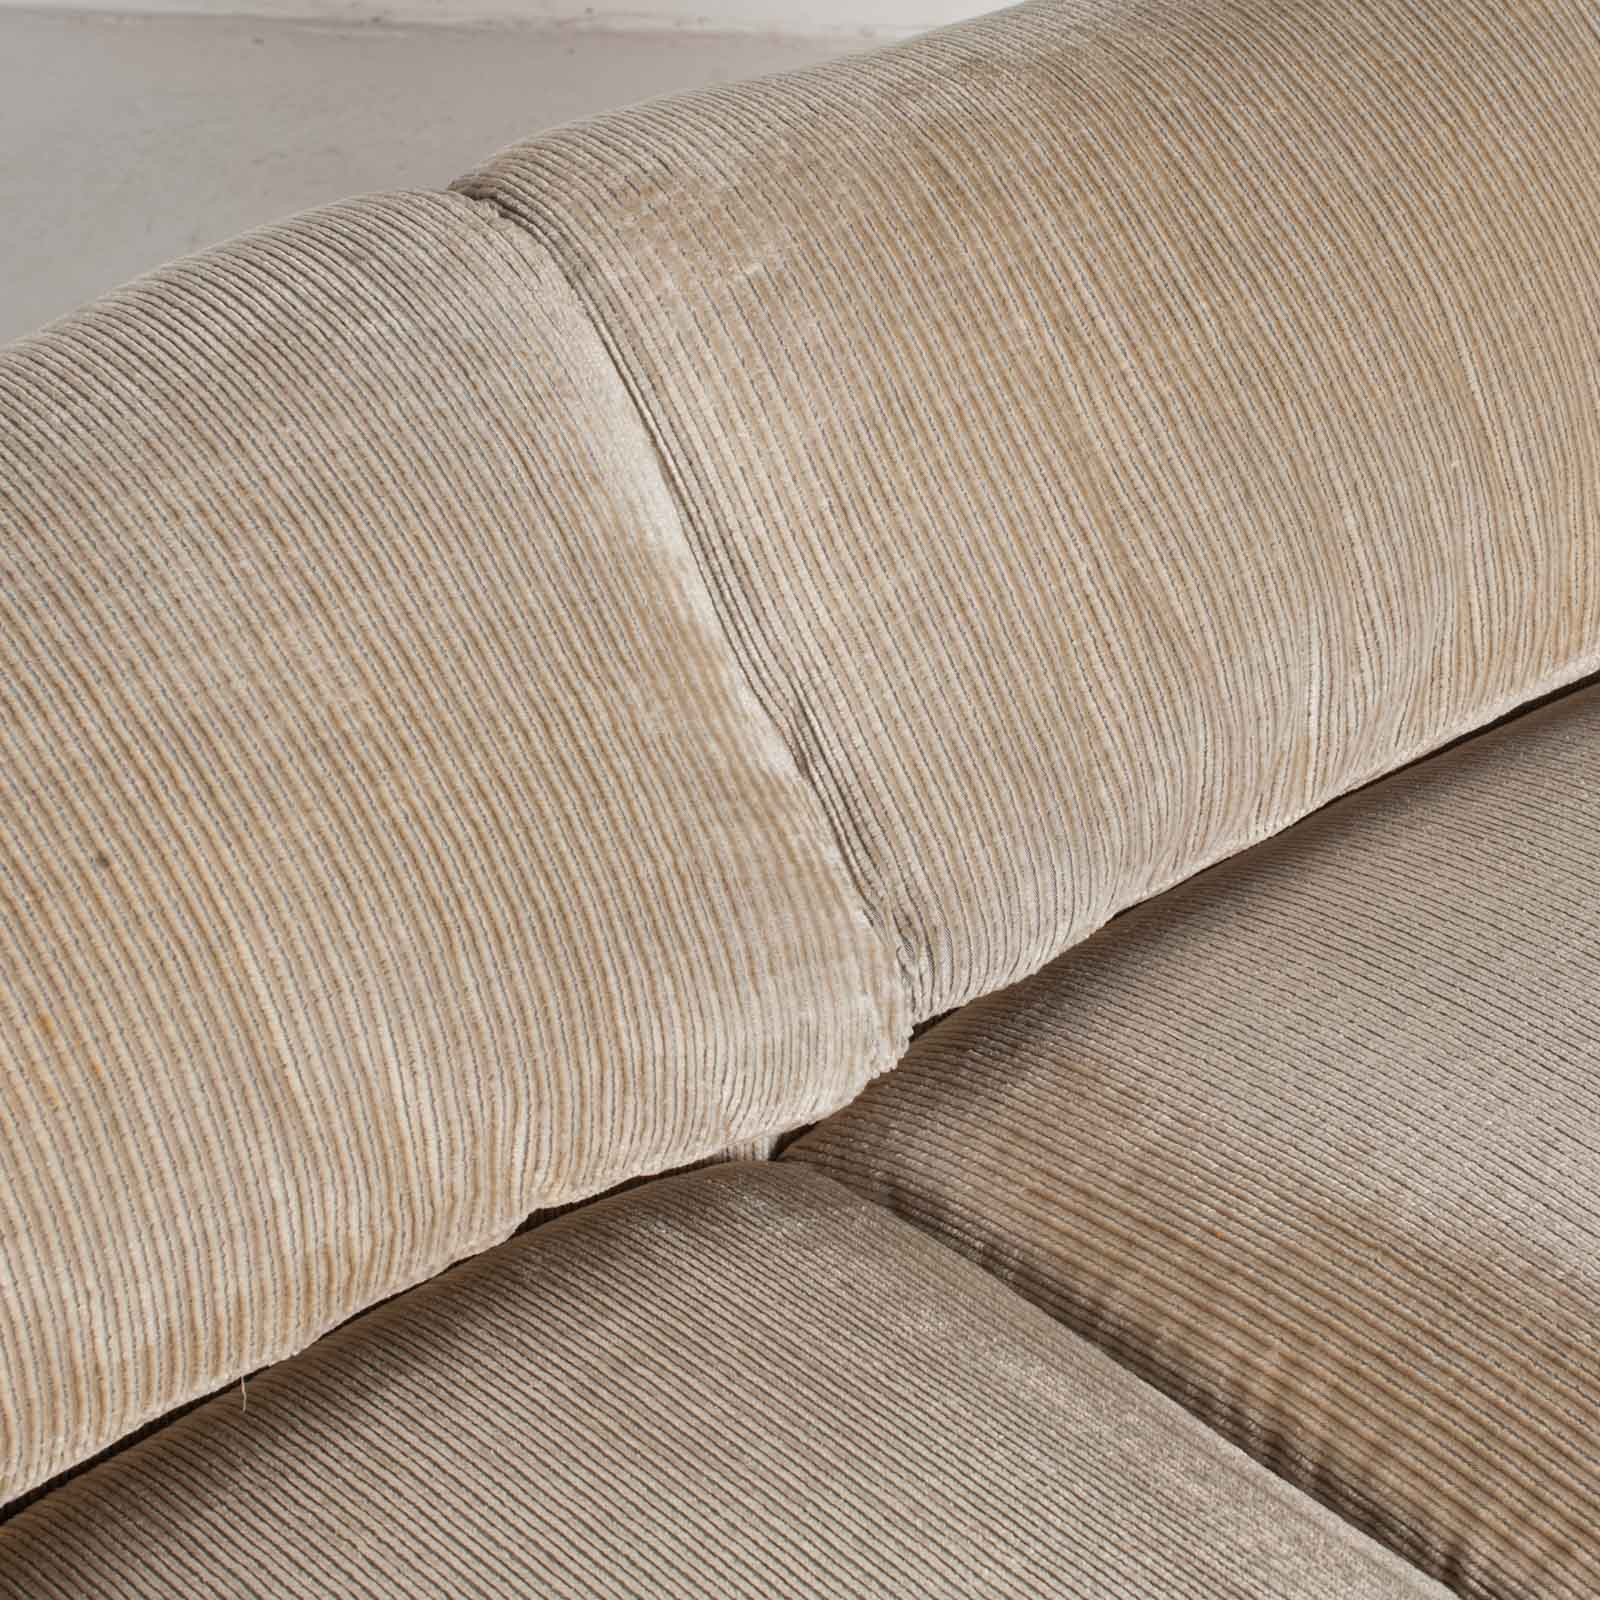 Maralunga 2 Seat Sofa By Vico Magistretti For Cassina In Original Upholstery 1970s Italy 08